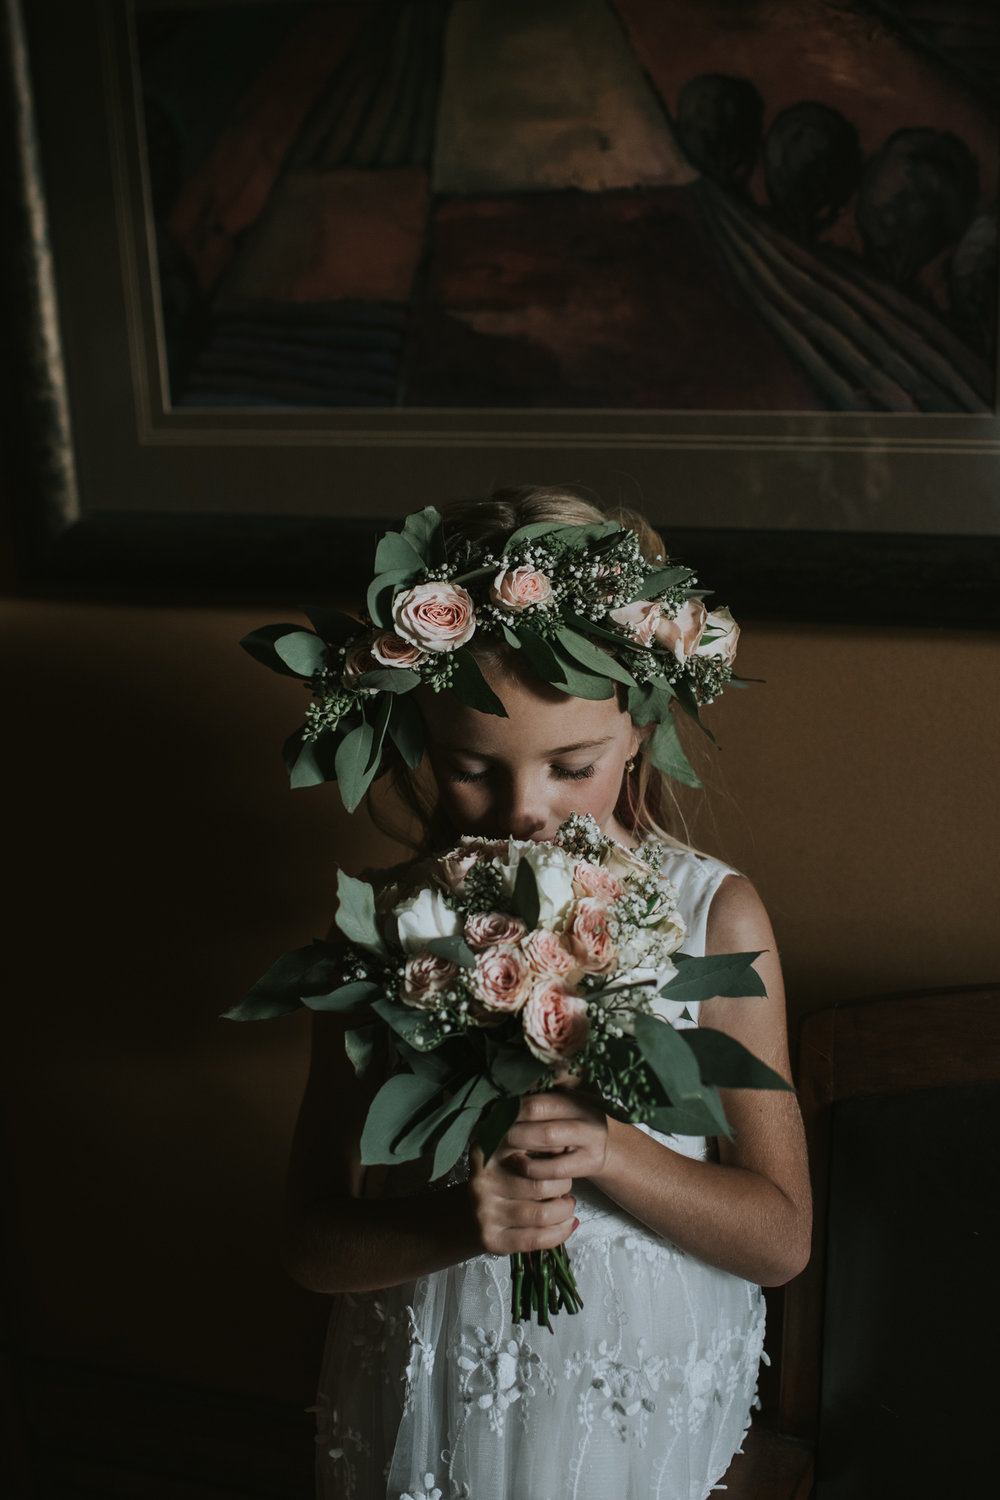 The sweetest flower girl